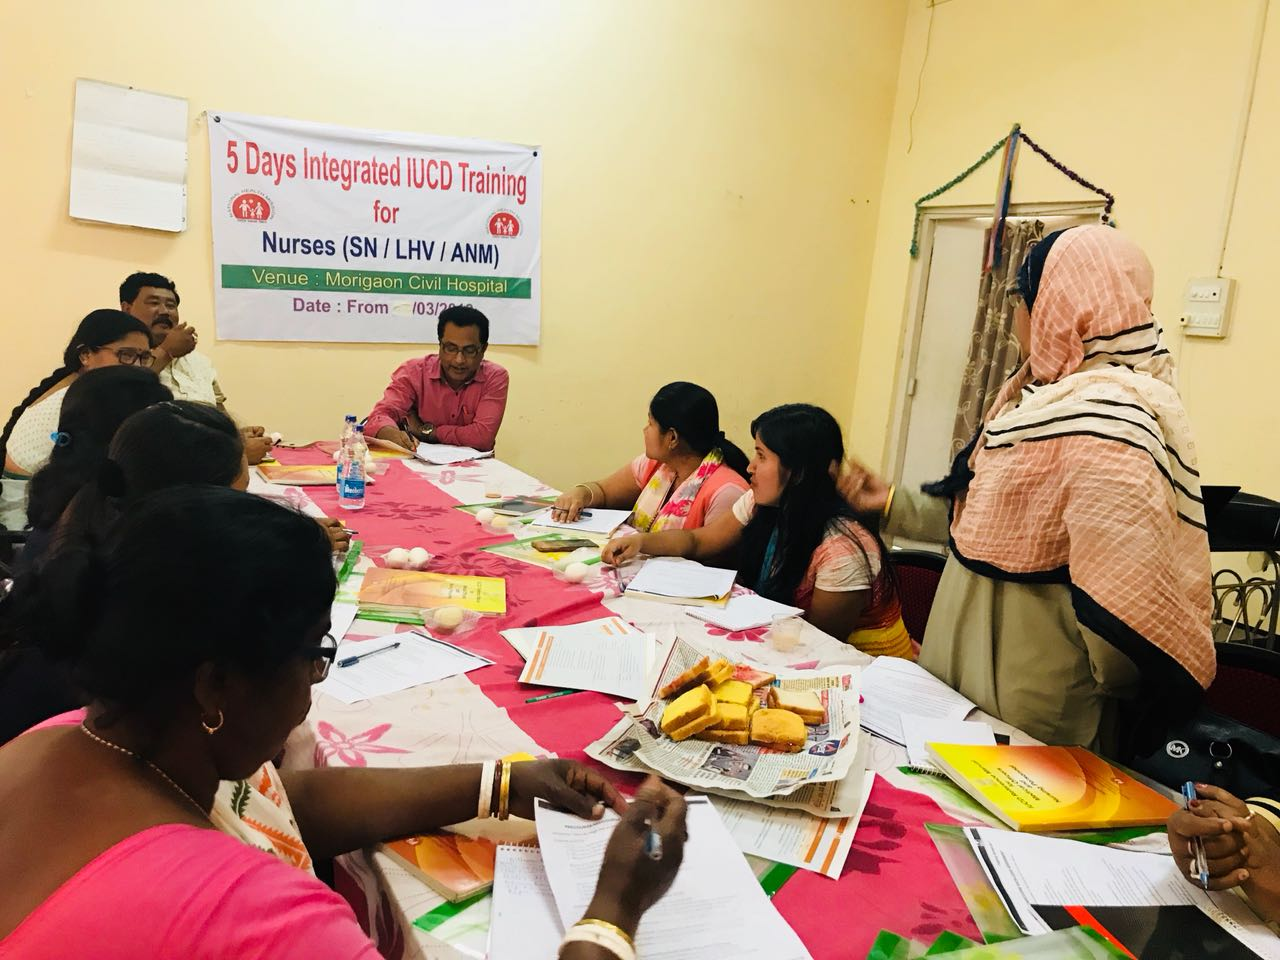 Morigaon district Assam holds five-day integrated IUCD training for staff nurses, LHVs and ANMs.